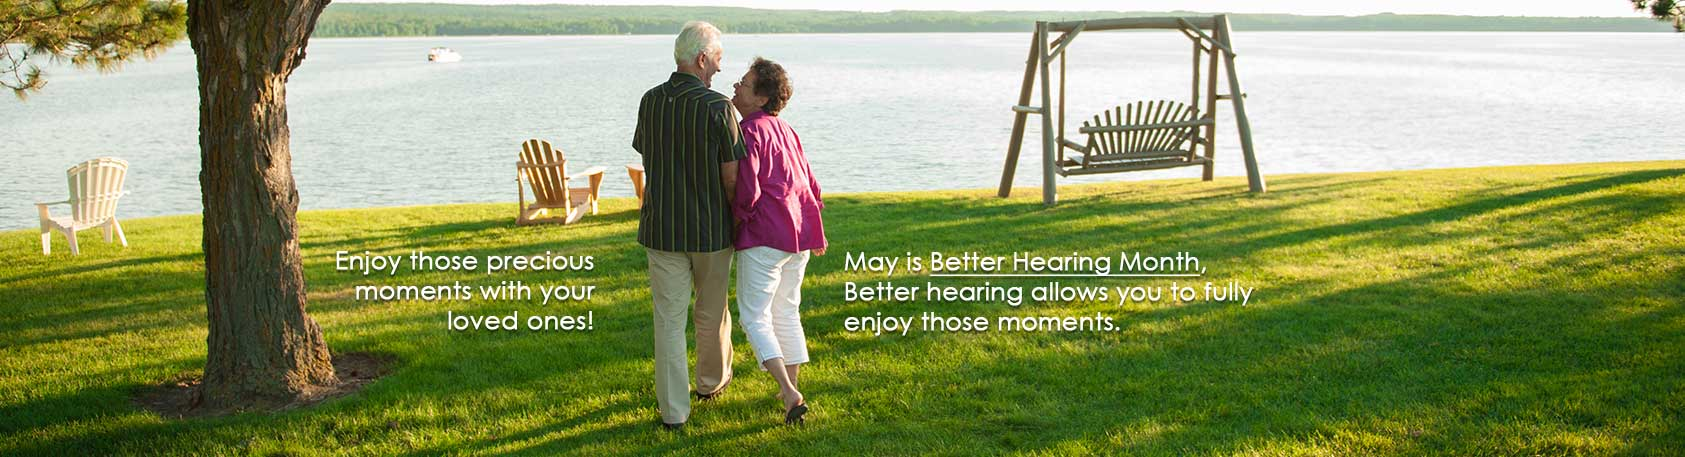 Better Hearing Month Banner - Clear Choice Hearing Aid Centers